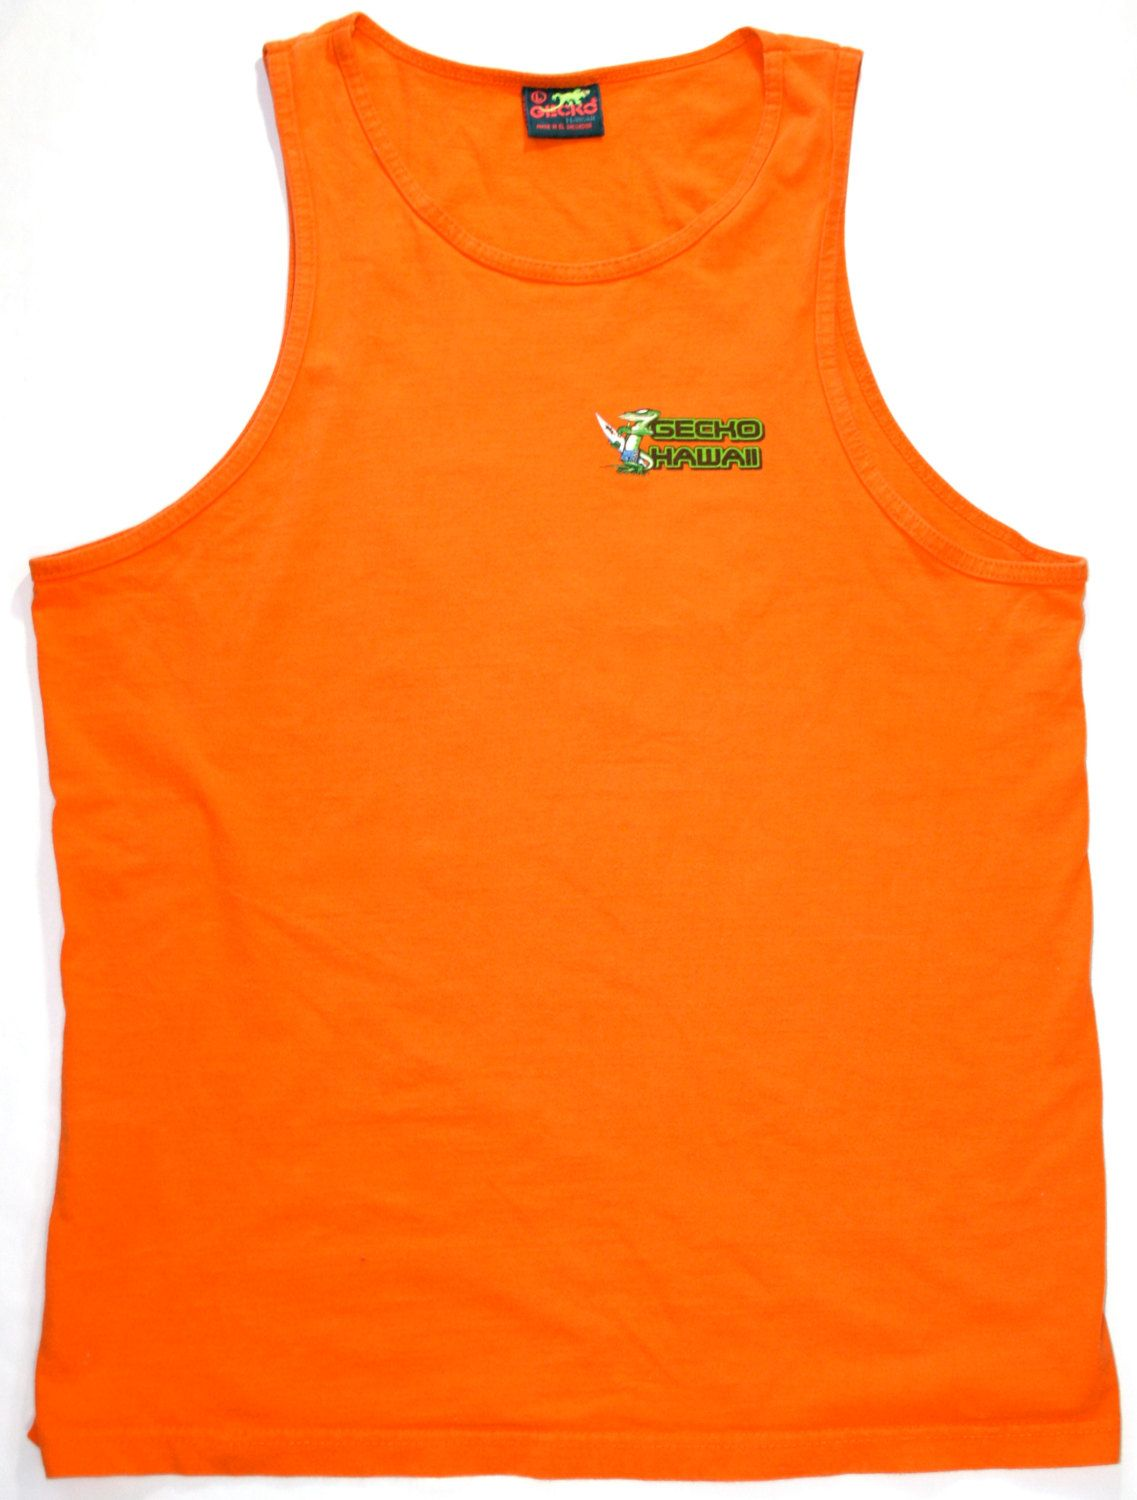 6593a573bda13b Vintage Early 90s Orange Gecko Hawaii Mens Tank Top Size Large.  20.00